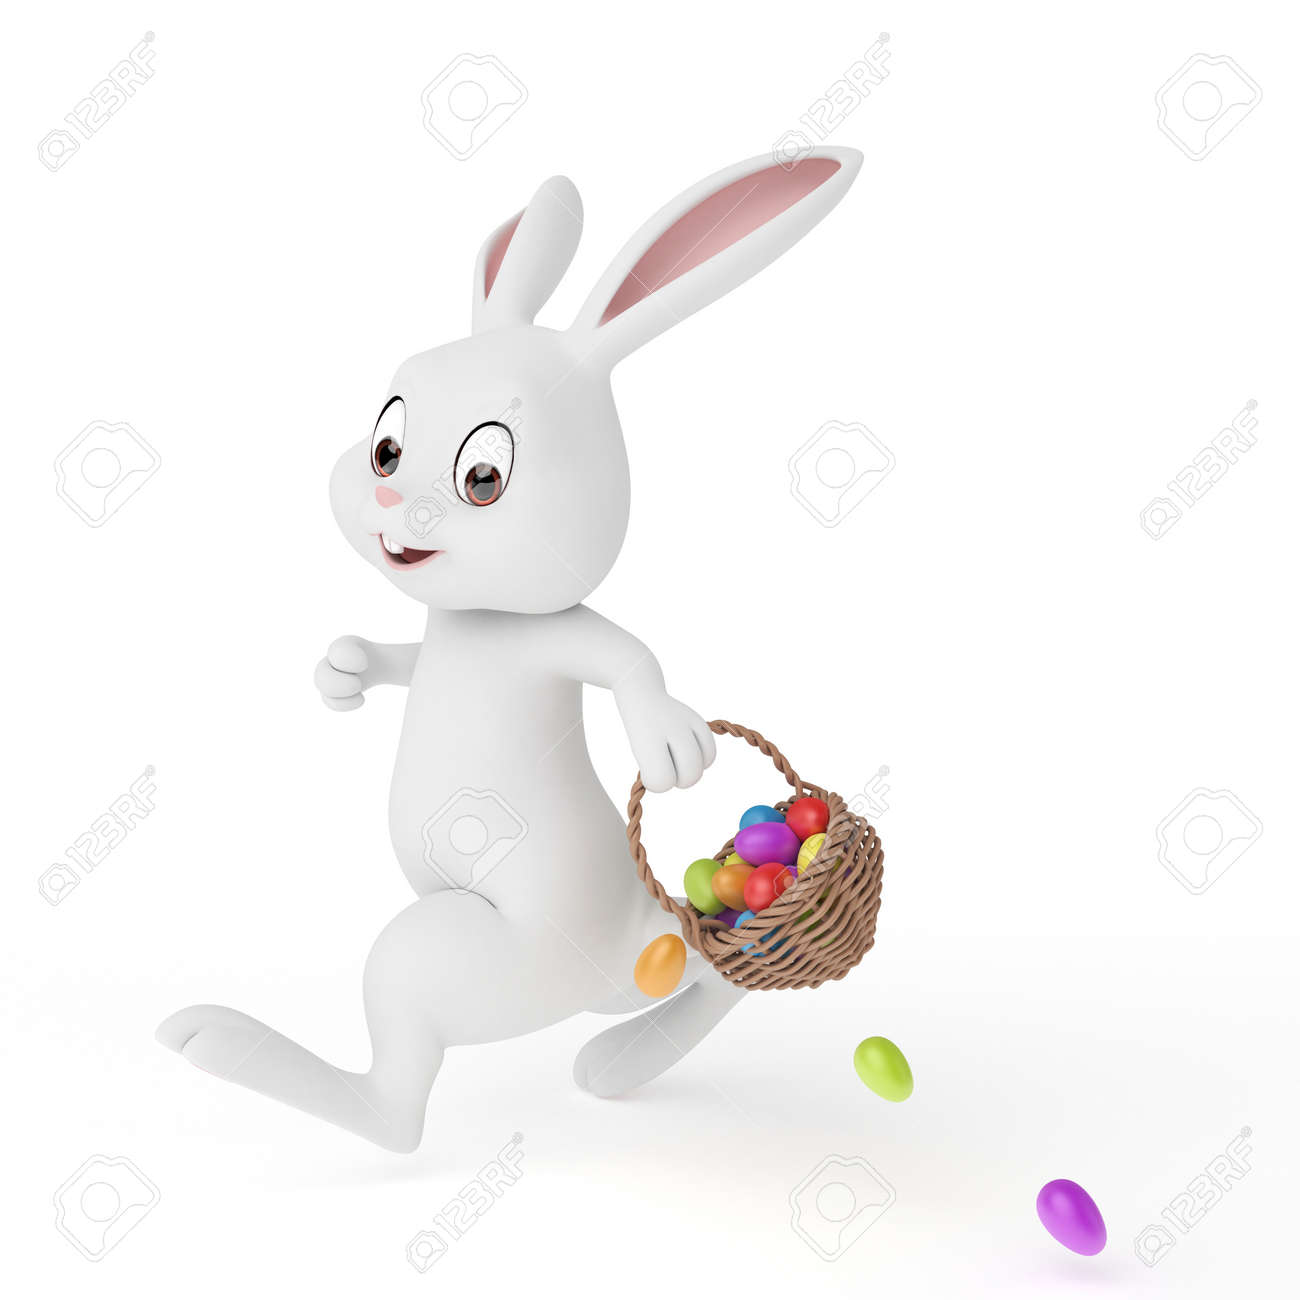 3d rendered illustration of a cute easter bunny Stock Photo - 12585768